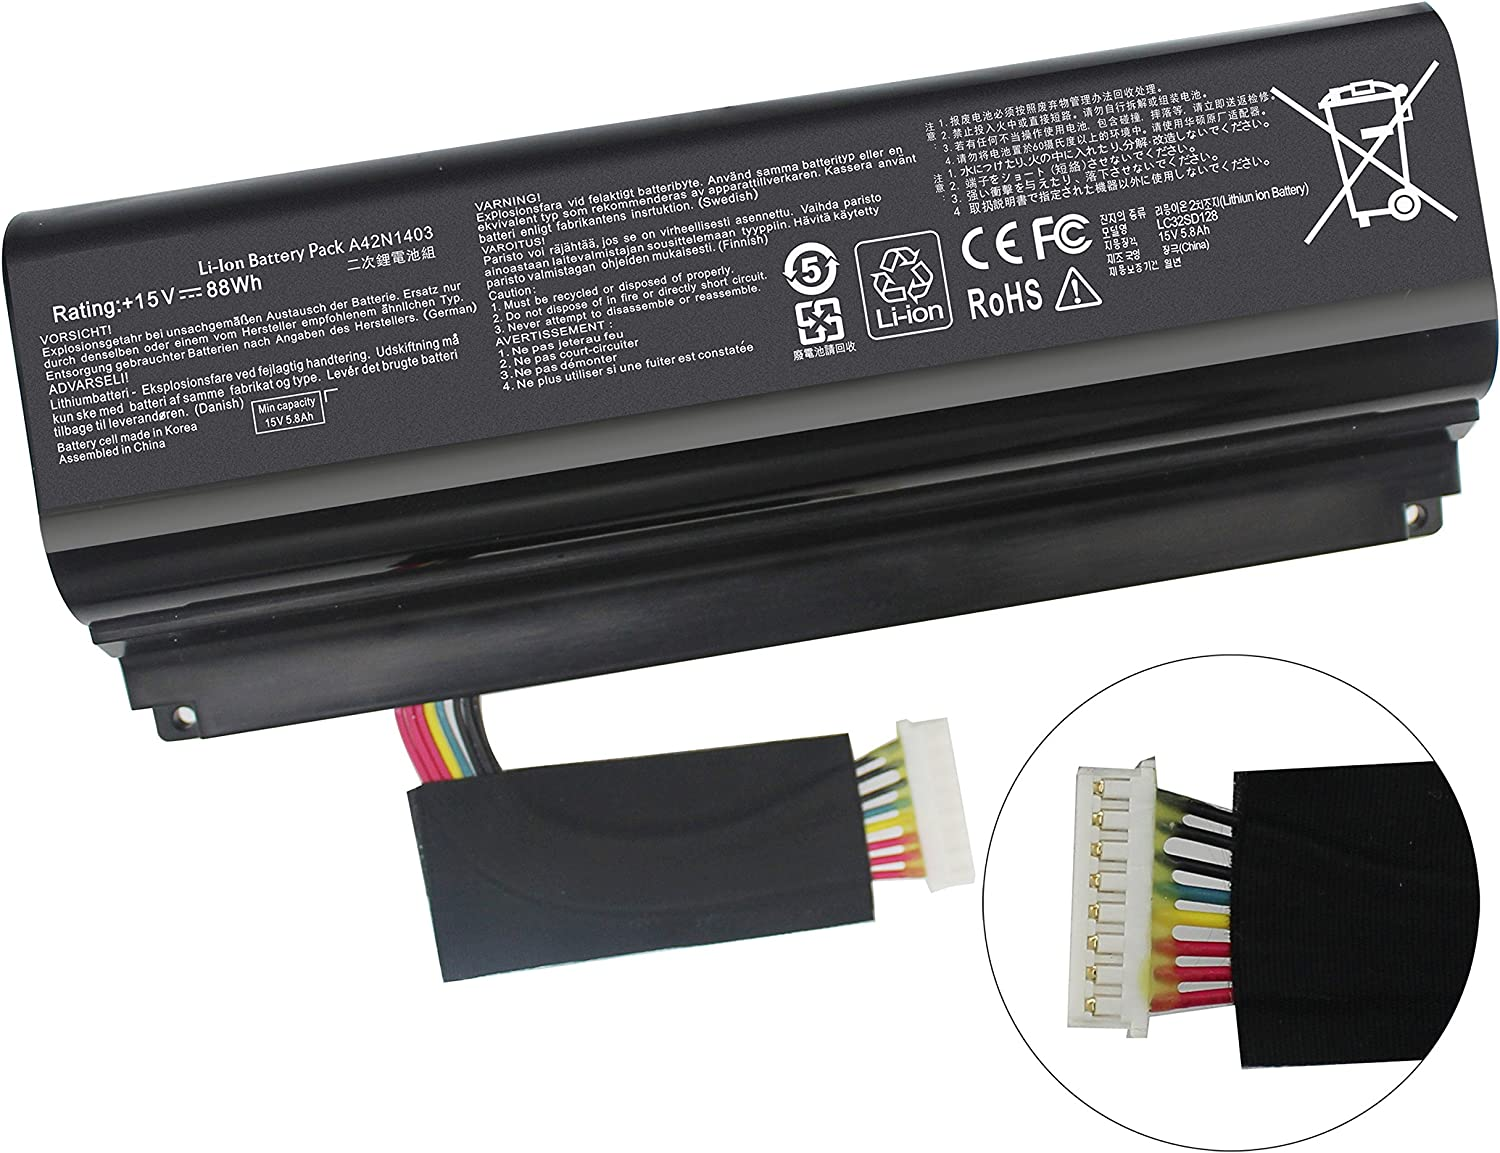 A42N1403 Battery Compatible with ASUS ROG GFX71JY G751 G751J G751JM GFX71Y GFX71JT G751JL G751J-BHI7T25 G751JL-BSI7T28 GFX71JY4710 A42LM93 4ICR19/66-2 0B110-00290000